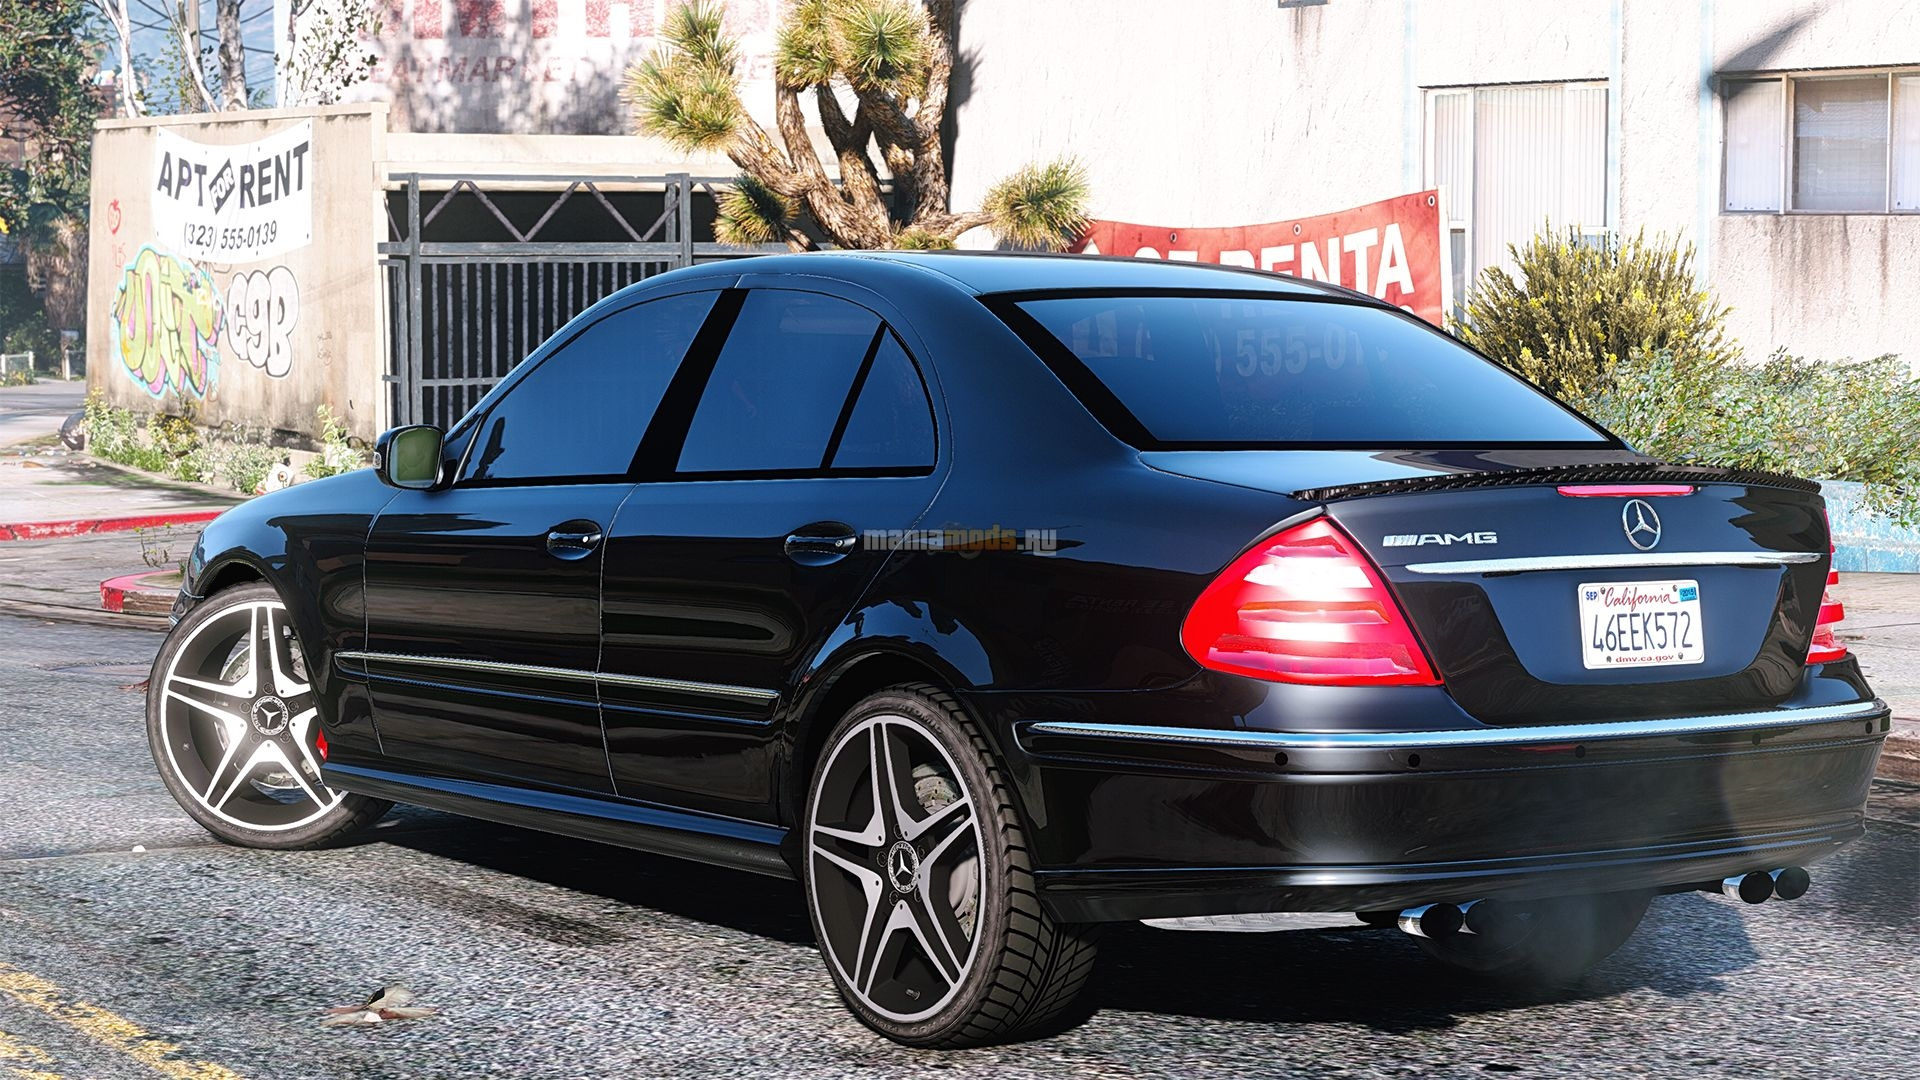 Mercedes benz e320 w211 amg gta5 for Mercedes benz mercedes benz mercedes benz